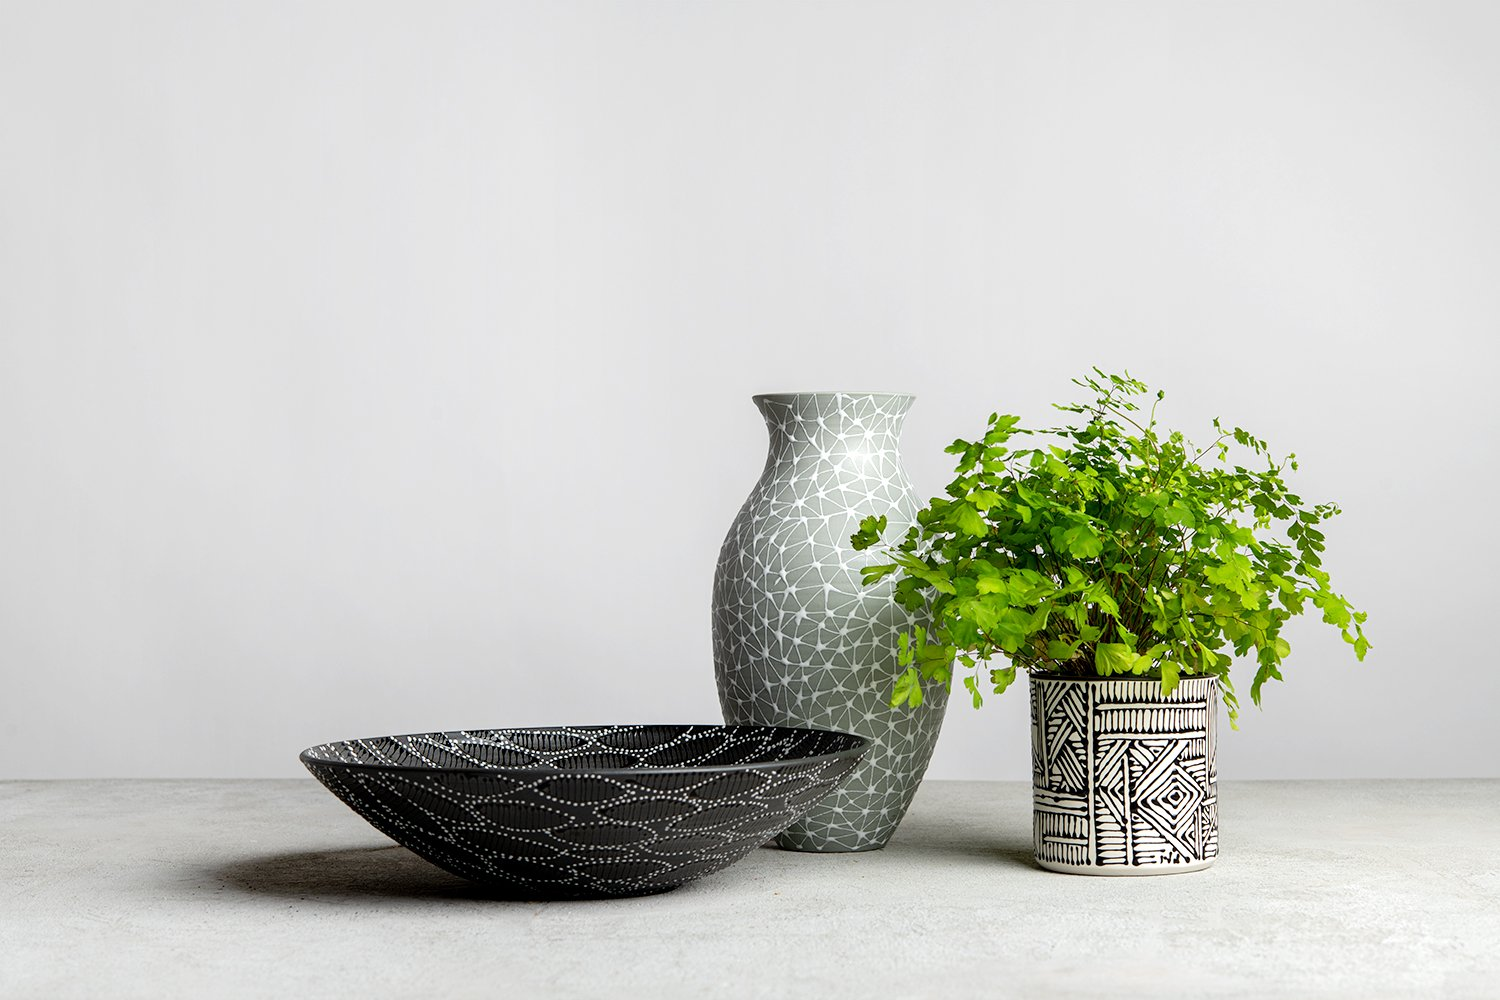 Cylindrical shaped planter